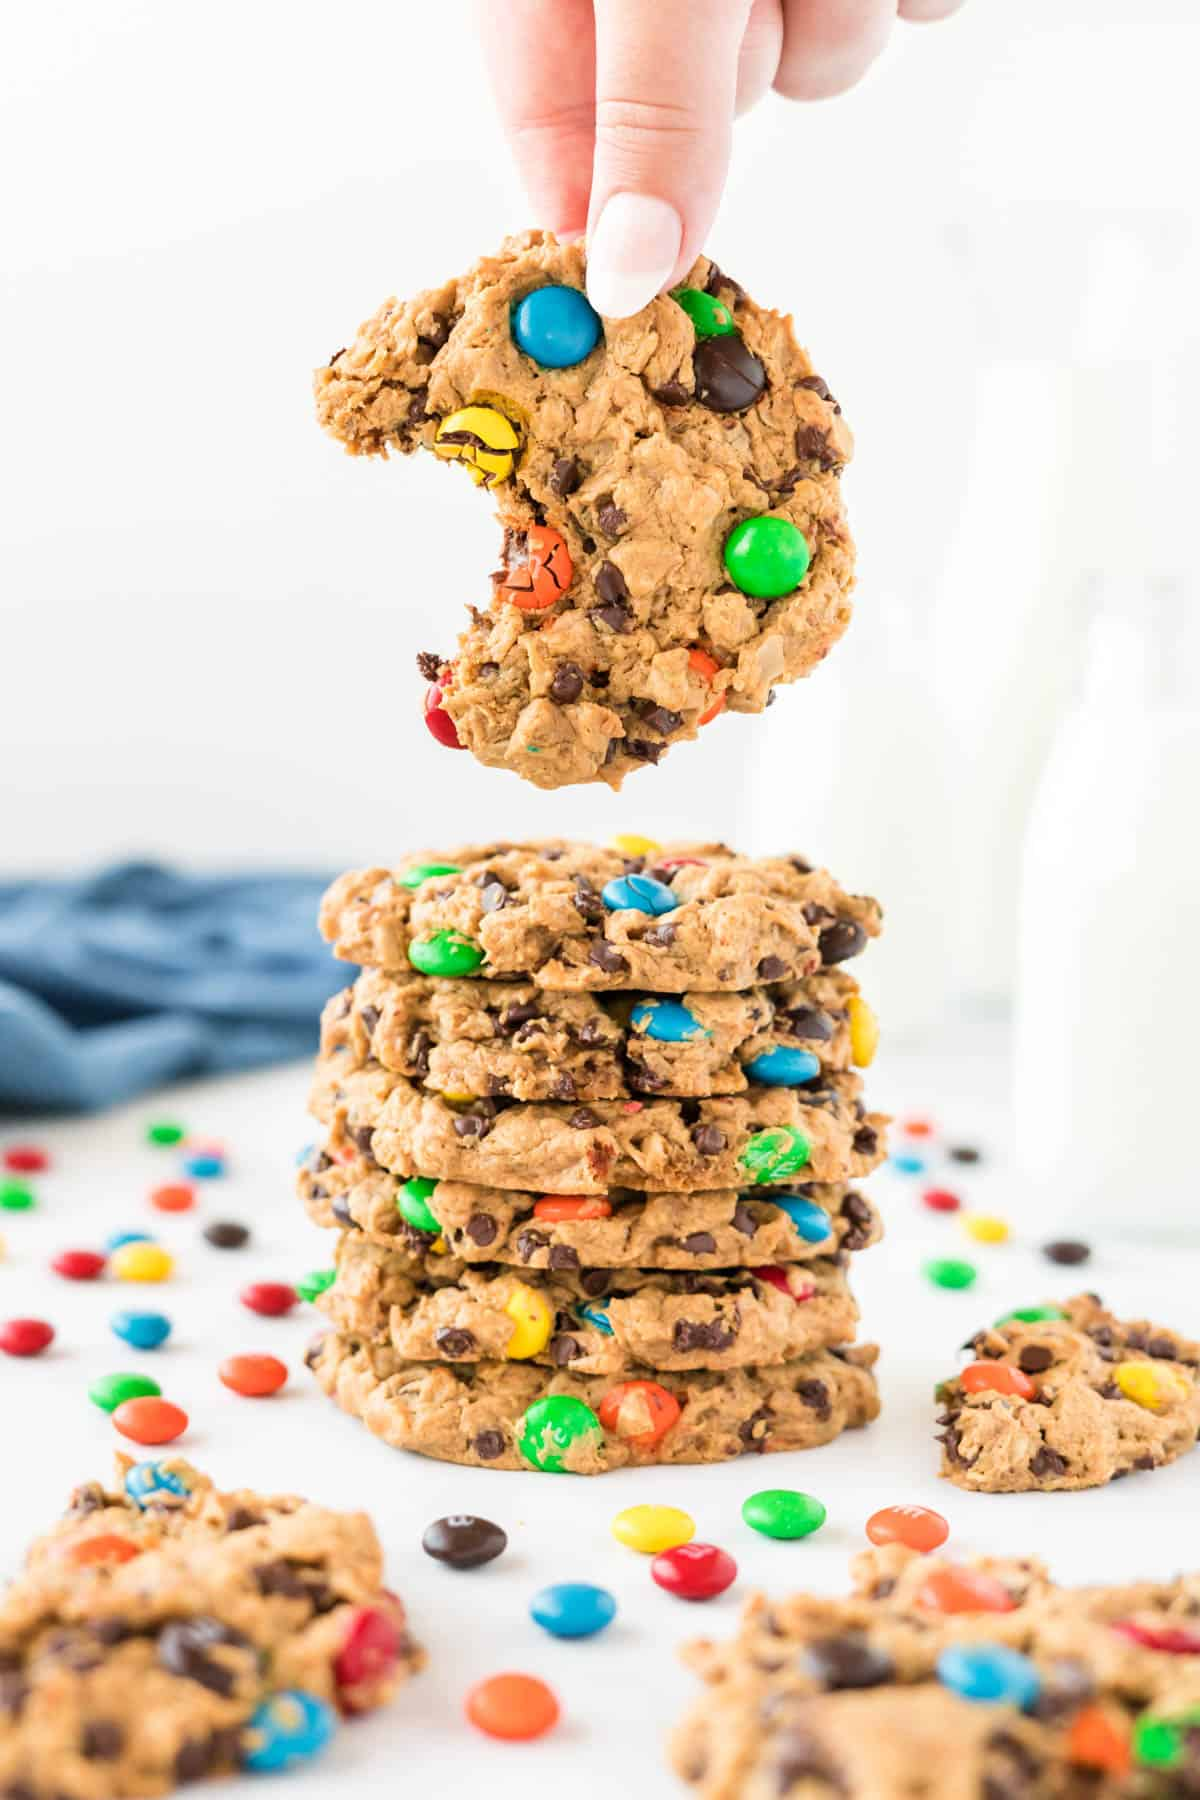 a hand taking a monster cookie with a bite out of it from a stack of cookies